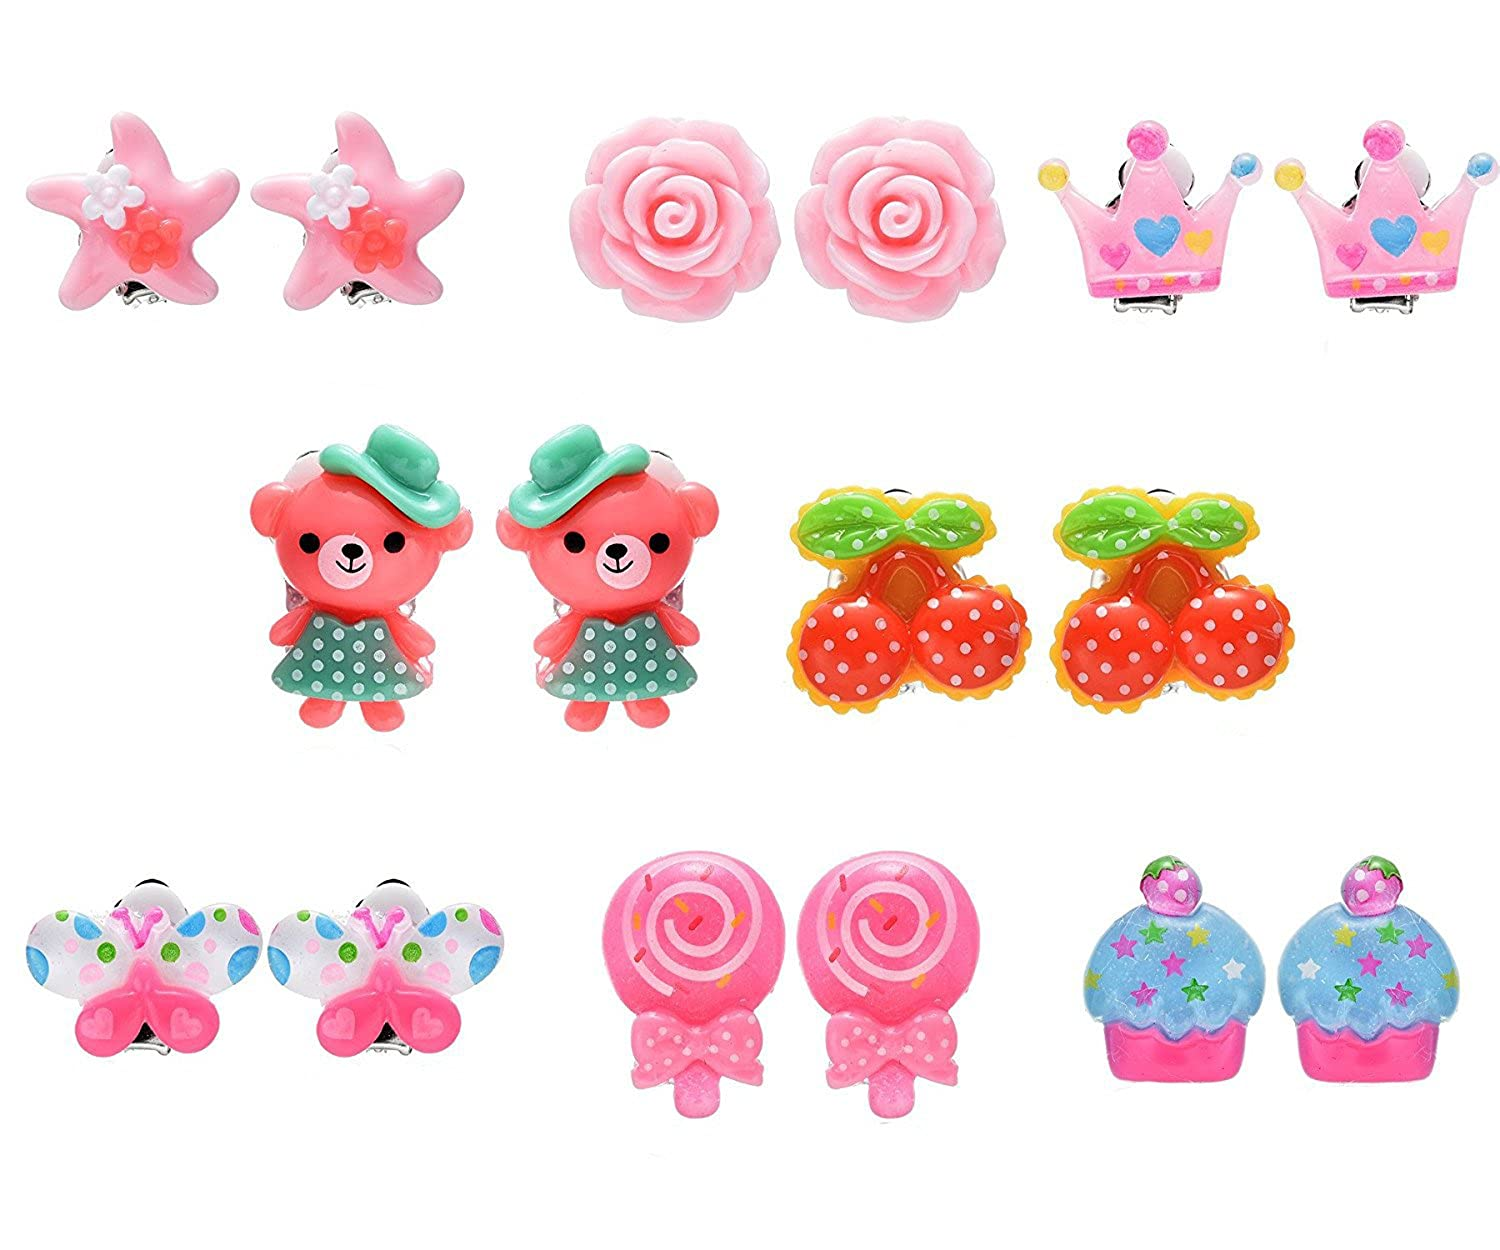 8 Pairs Animal Flower Princess Clip On Earrings Set for Kids Toddler Little Girls Dragon Fashion